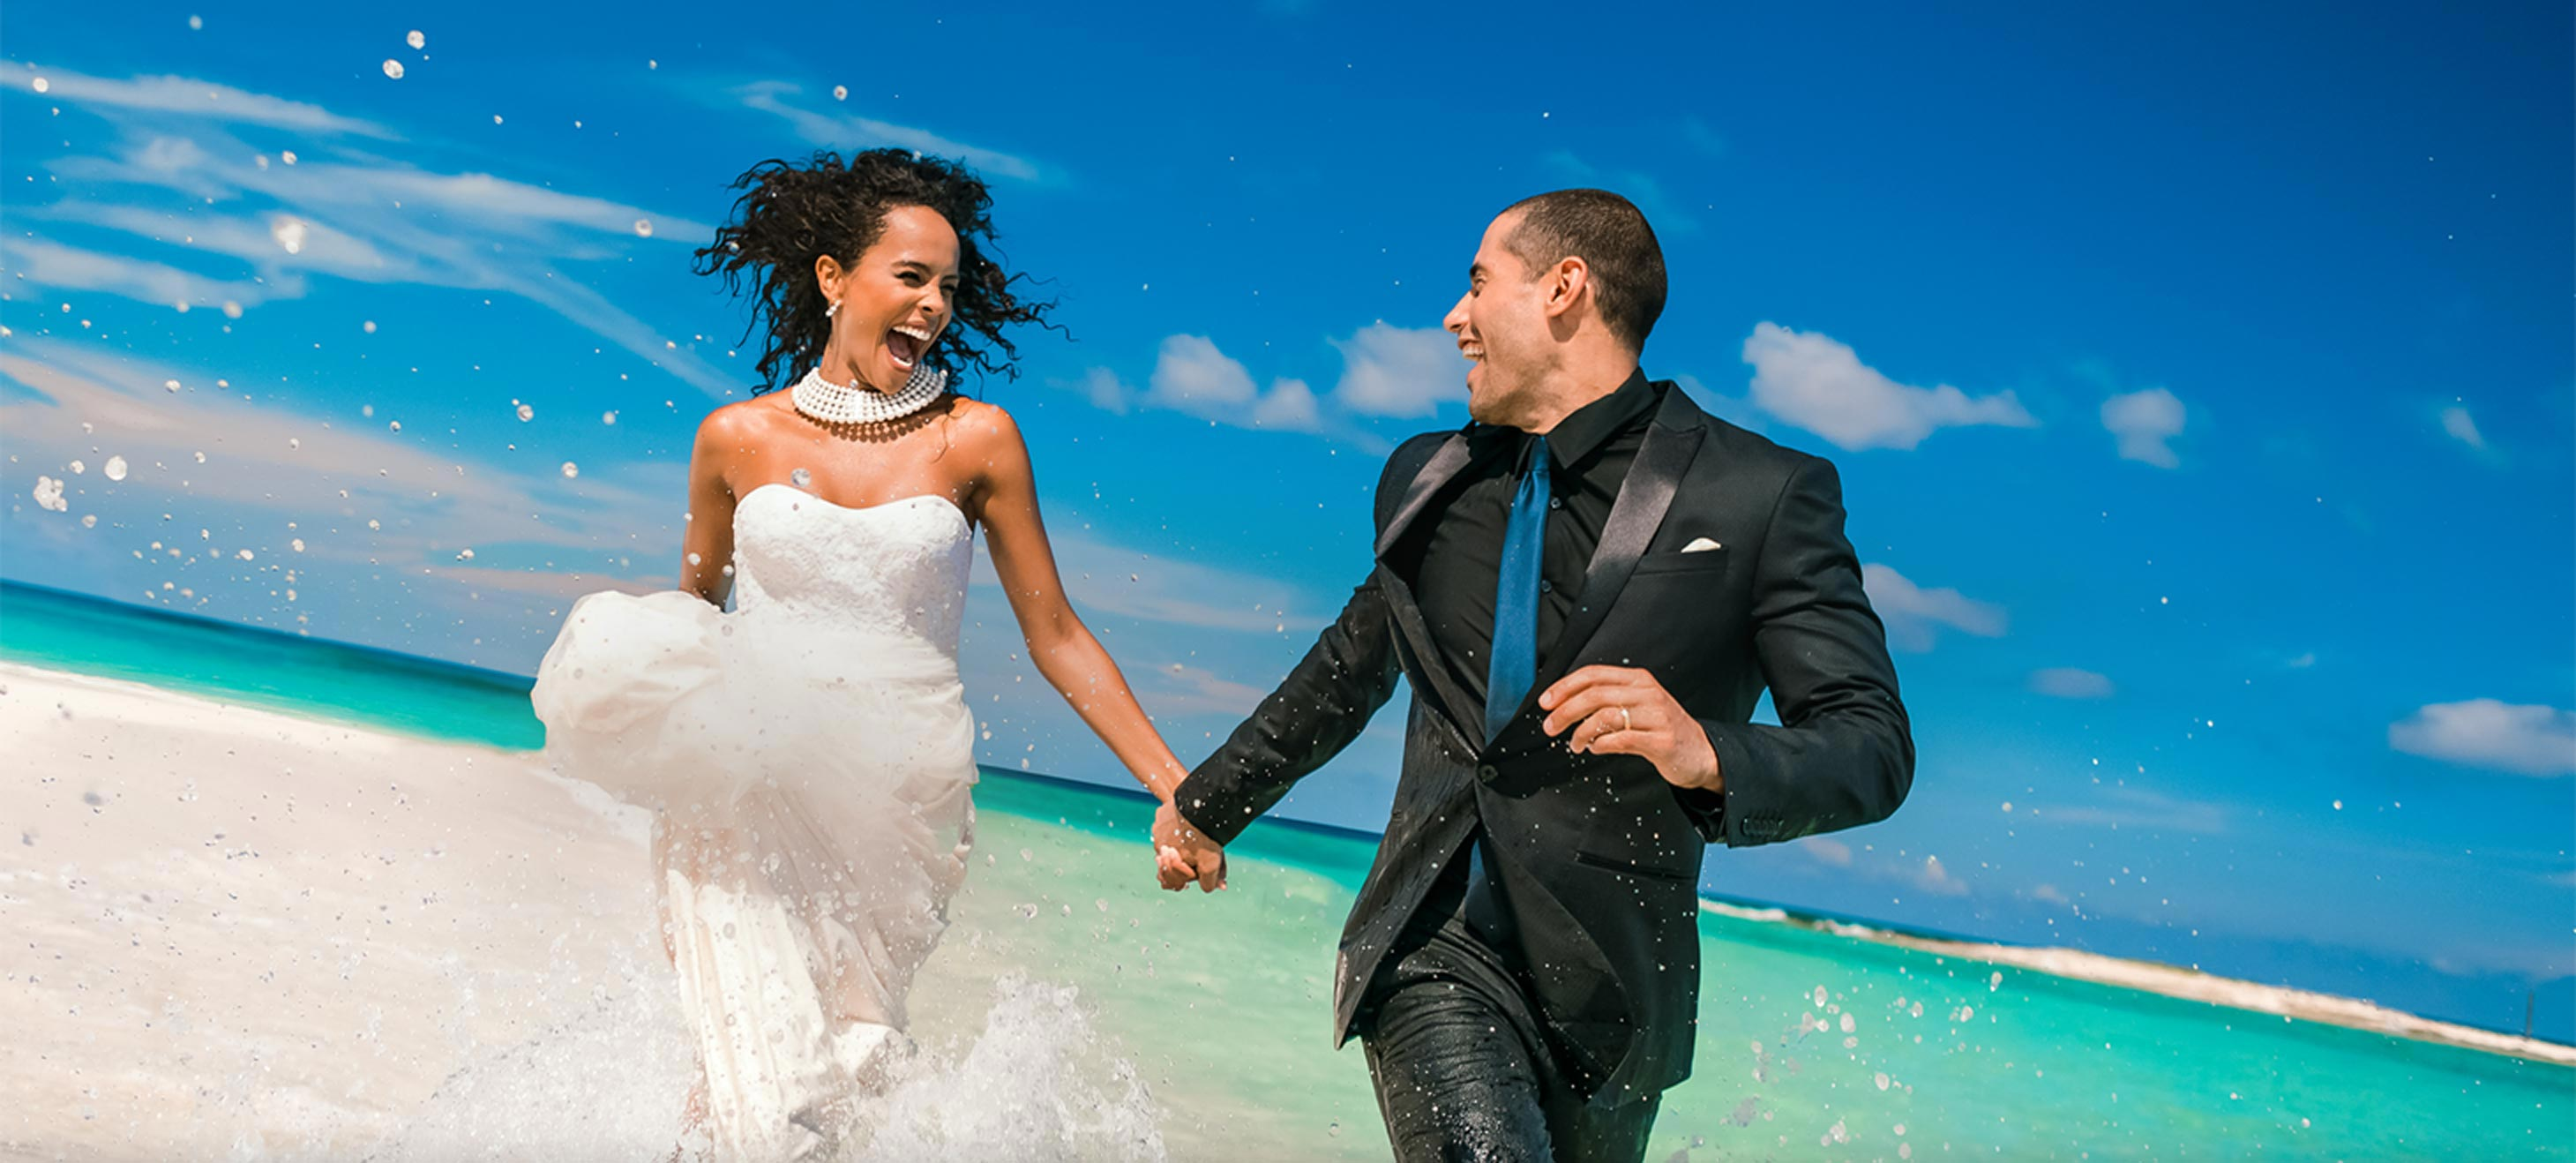 I will send you 1600 wedding related plr articles